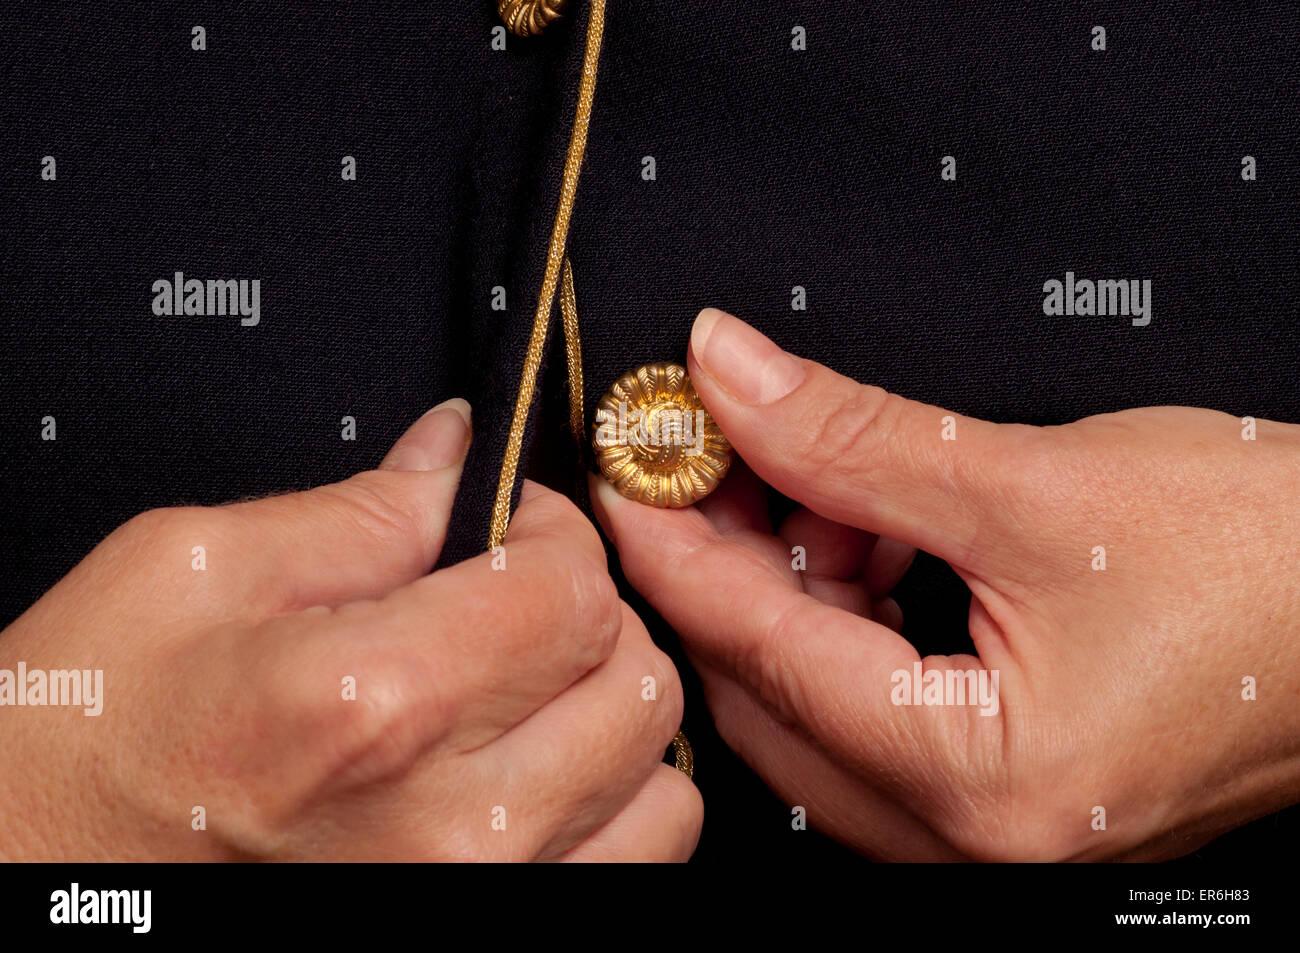 Woman with arthritis trying to button a button with painful hands. - Stock Image